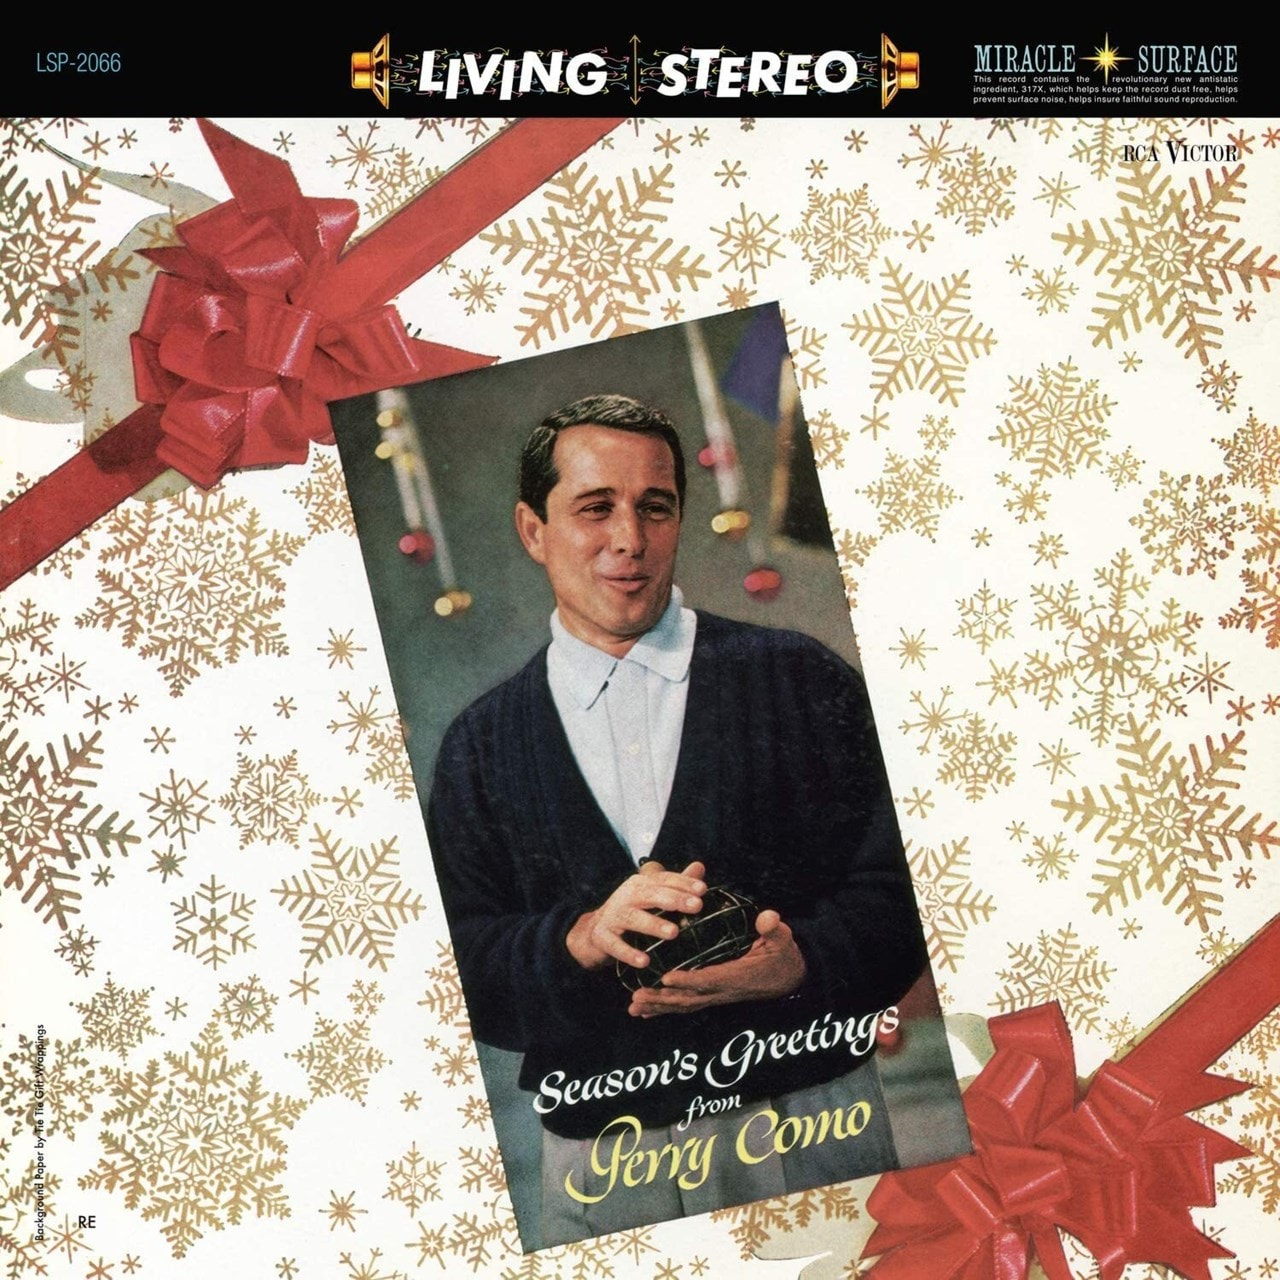 Season's Greetings from Perry Como - 1